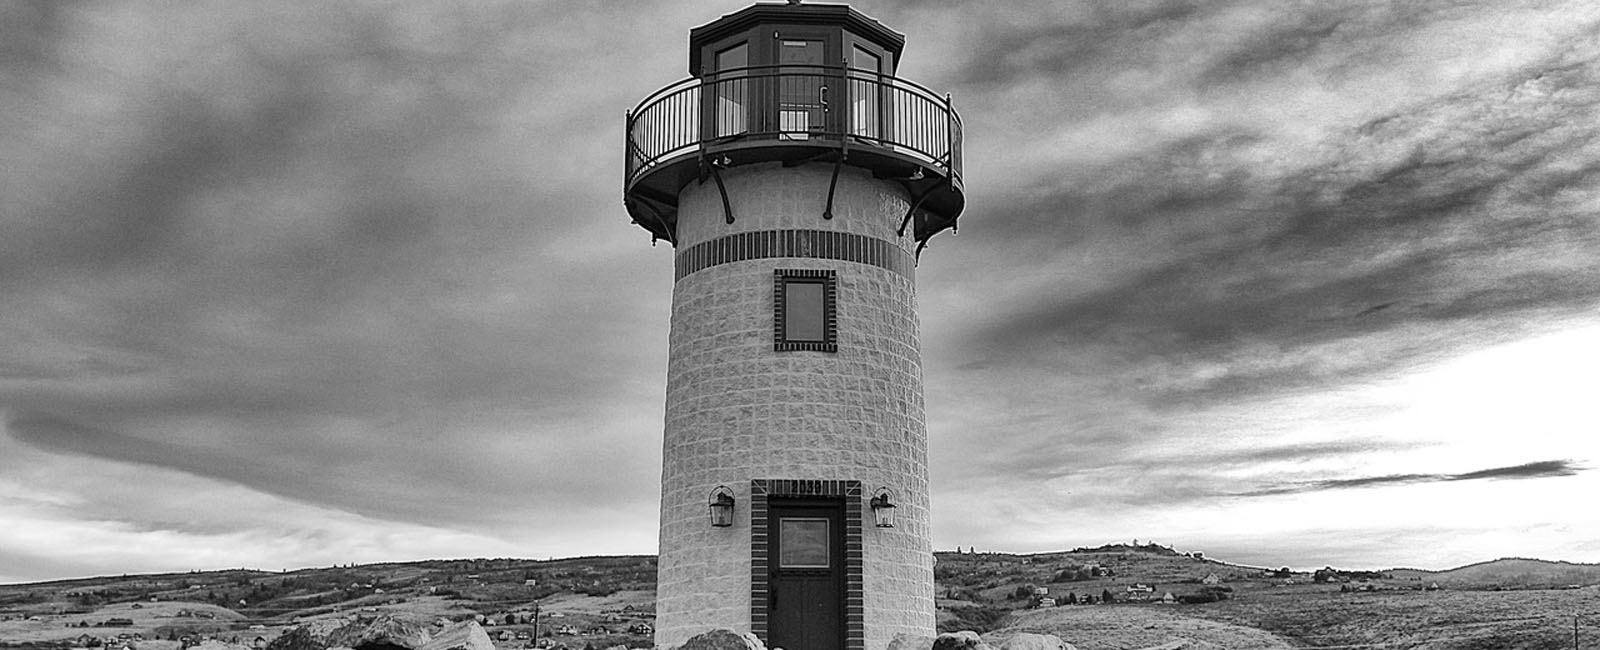 lighthouse-BandW-1600x650